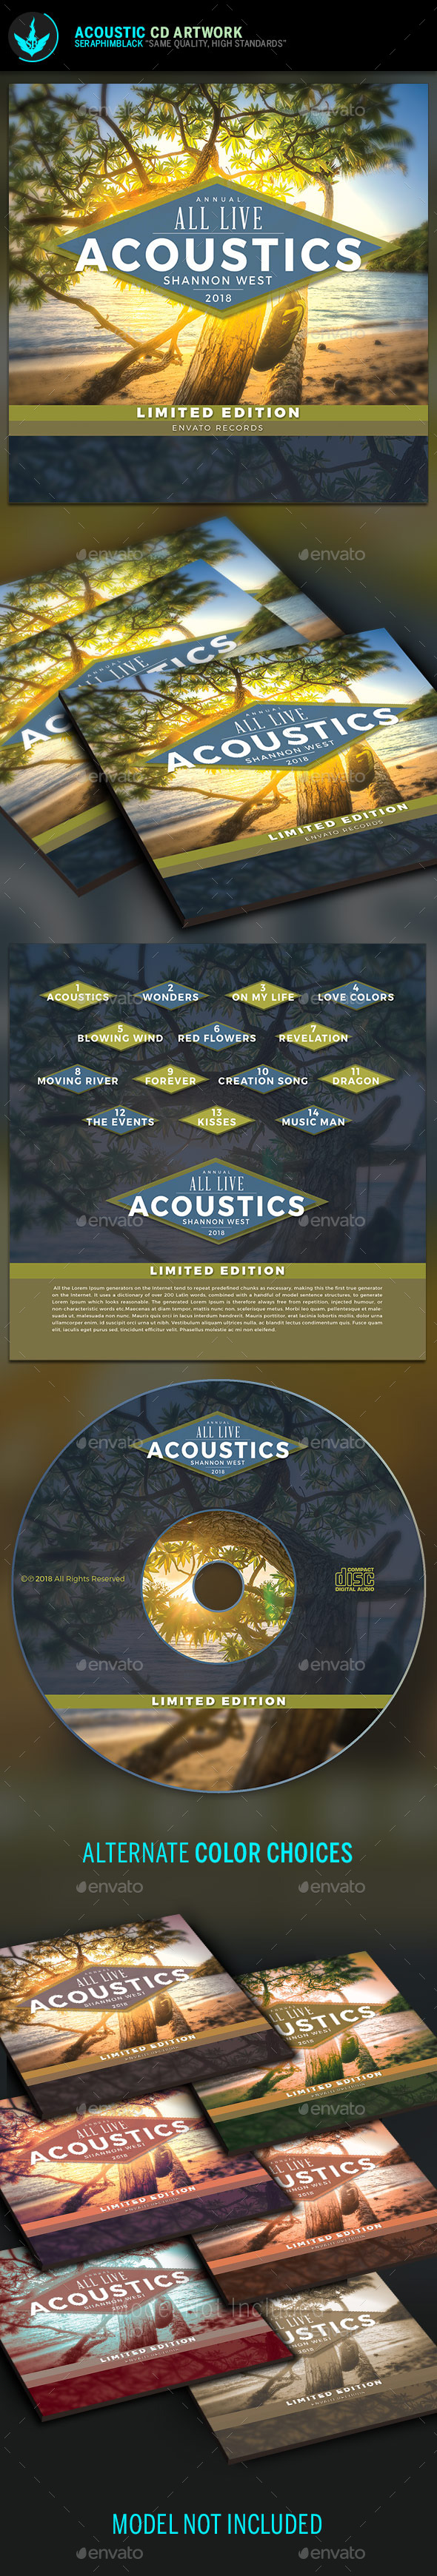 Acoustic CD Artwork Template - CD & DVD Artwork Print Templates